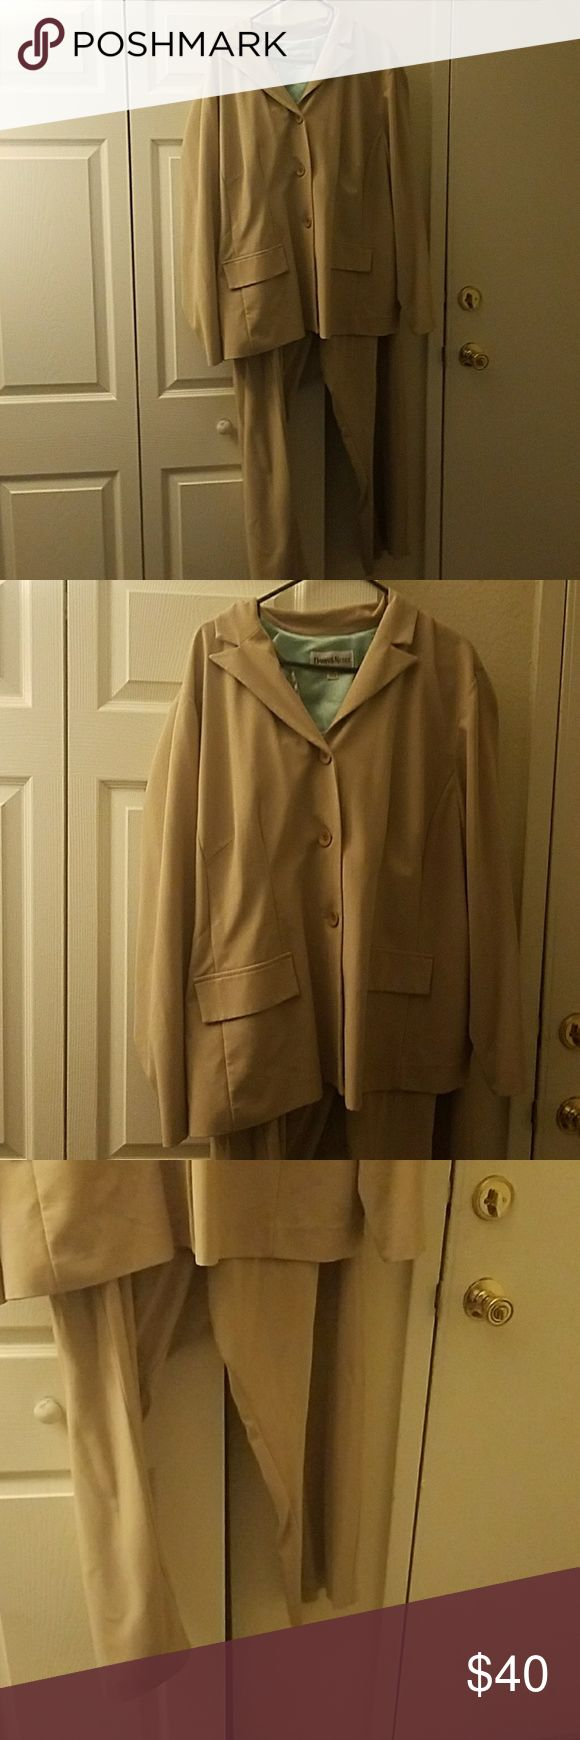 2 piece matching woman's pant suit Tan, gently used 3 button womans pants suit Danny and Nicole Other